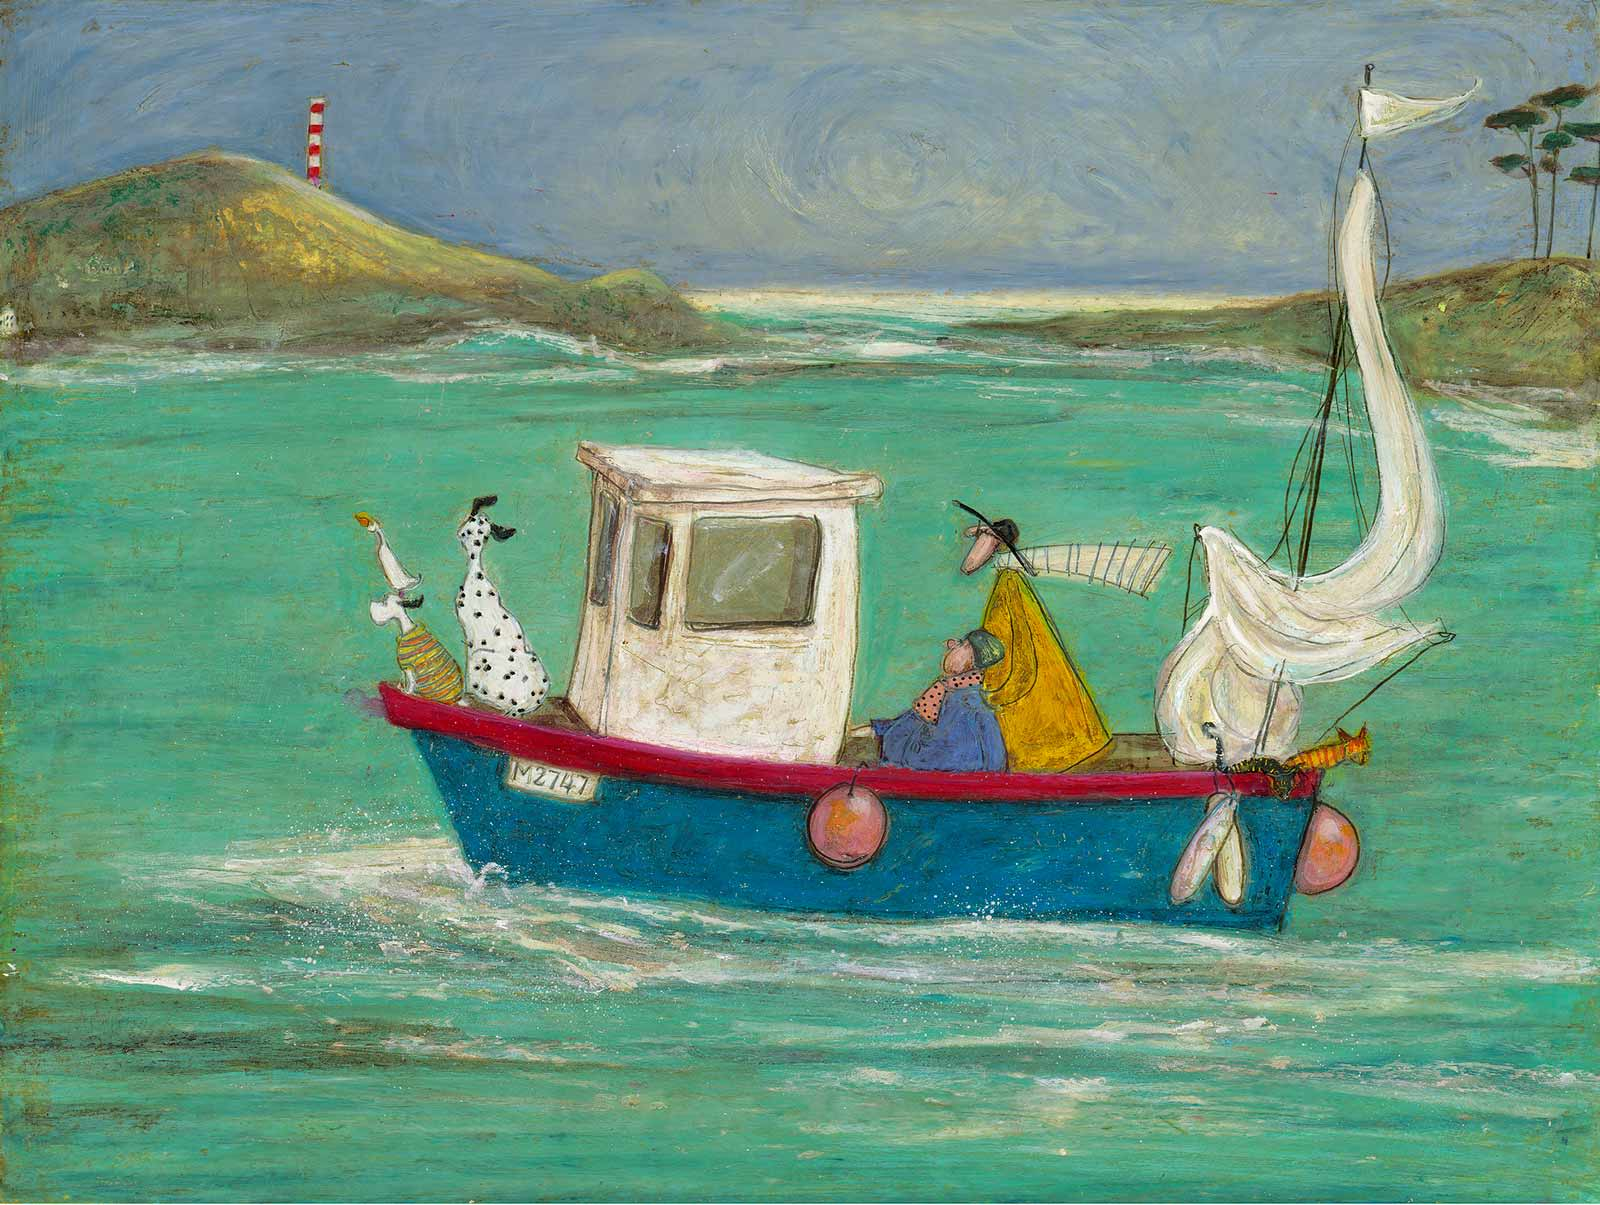 The Cornish Pasty Cruise, Sam Toft